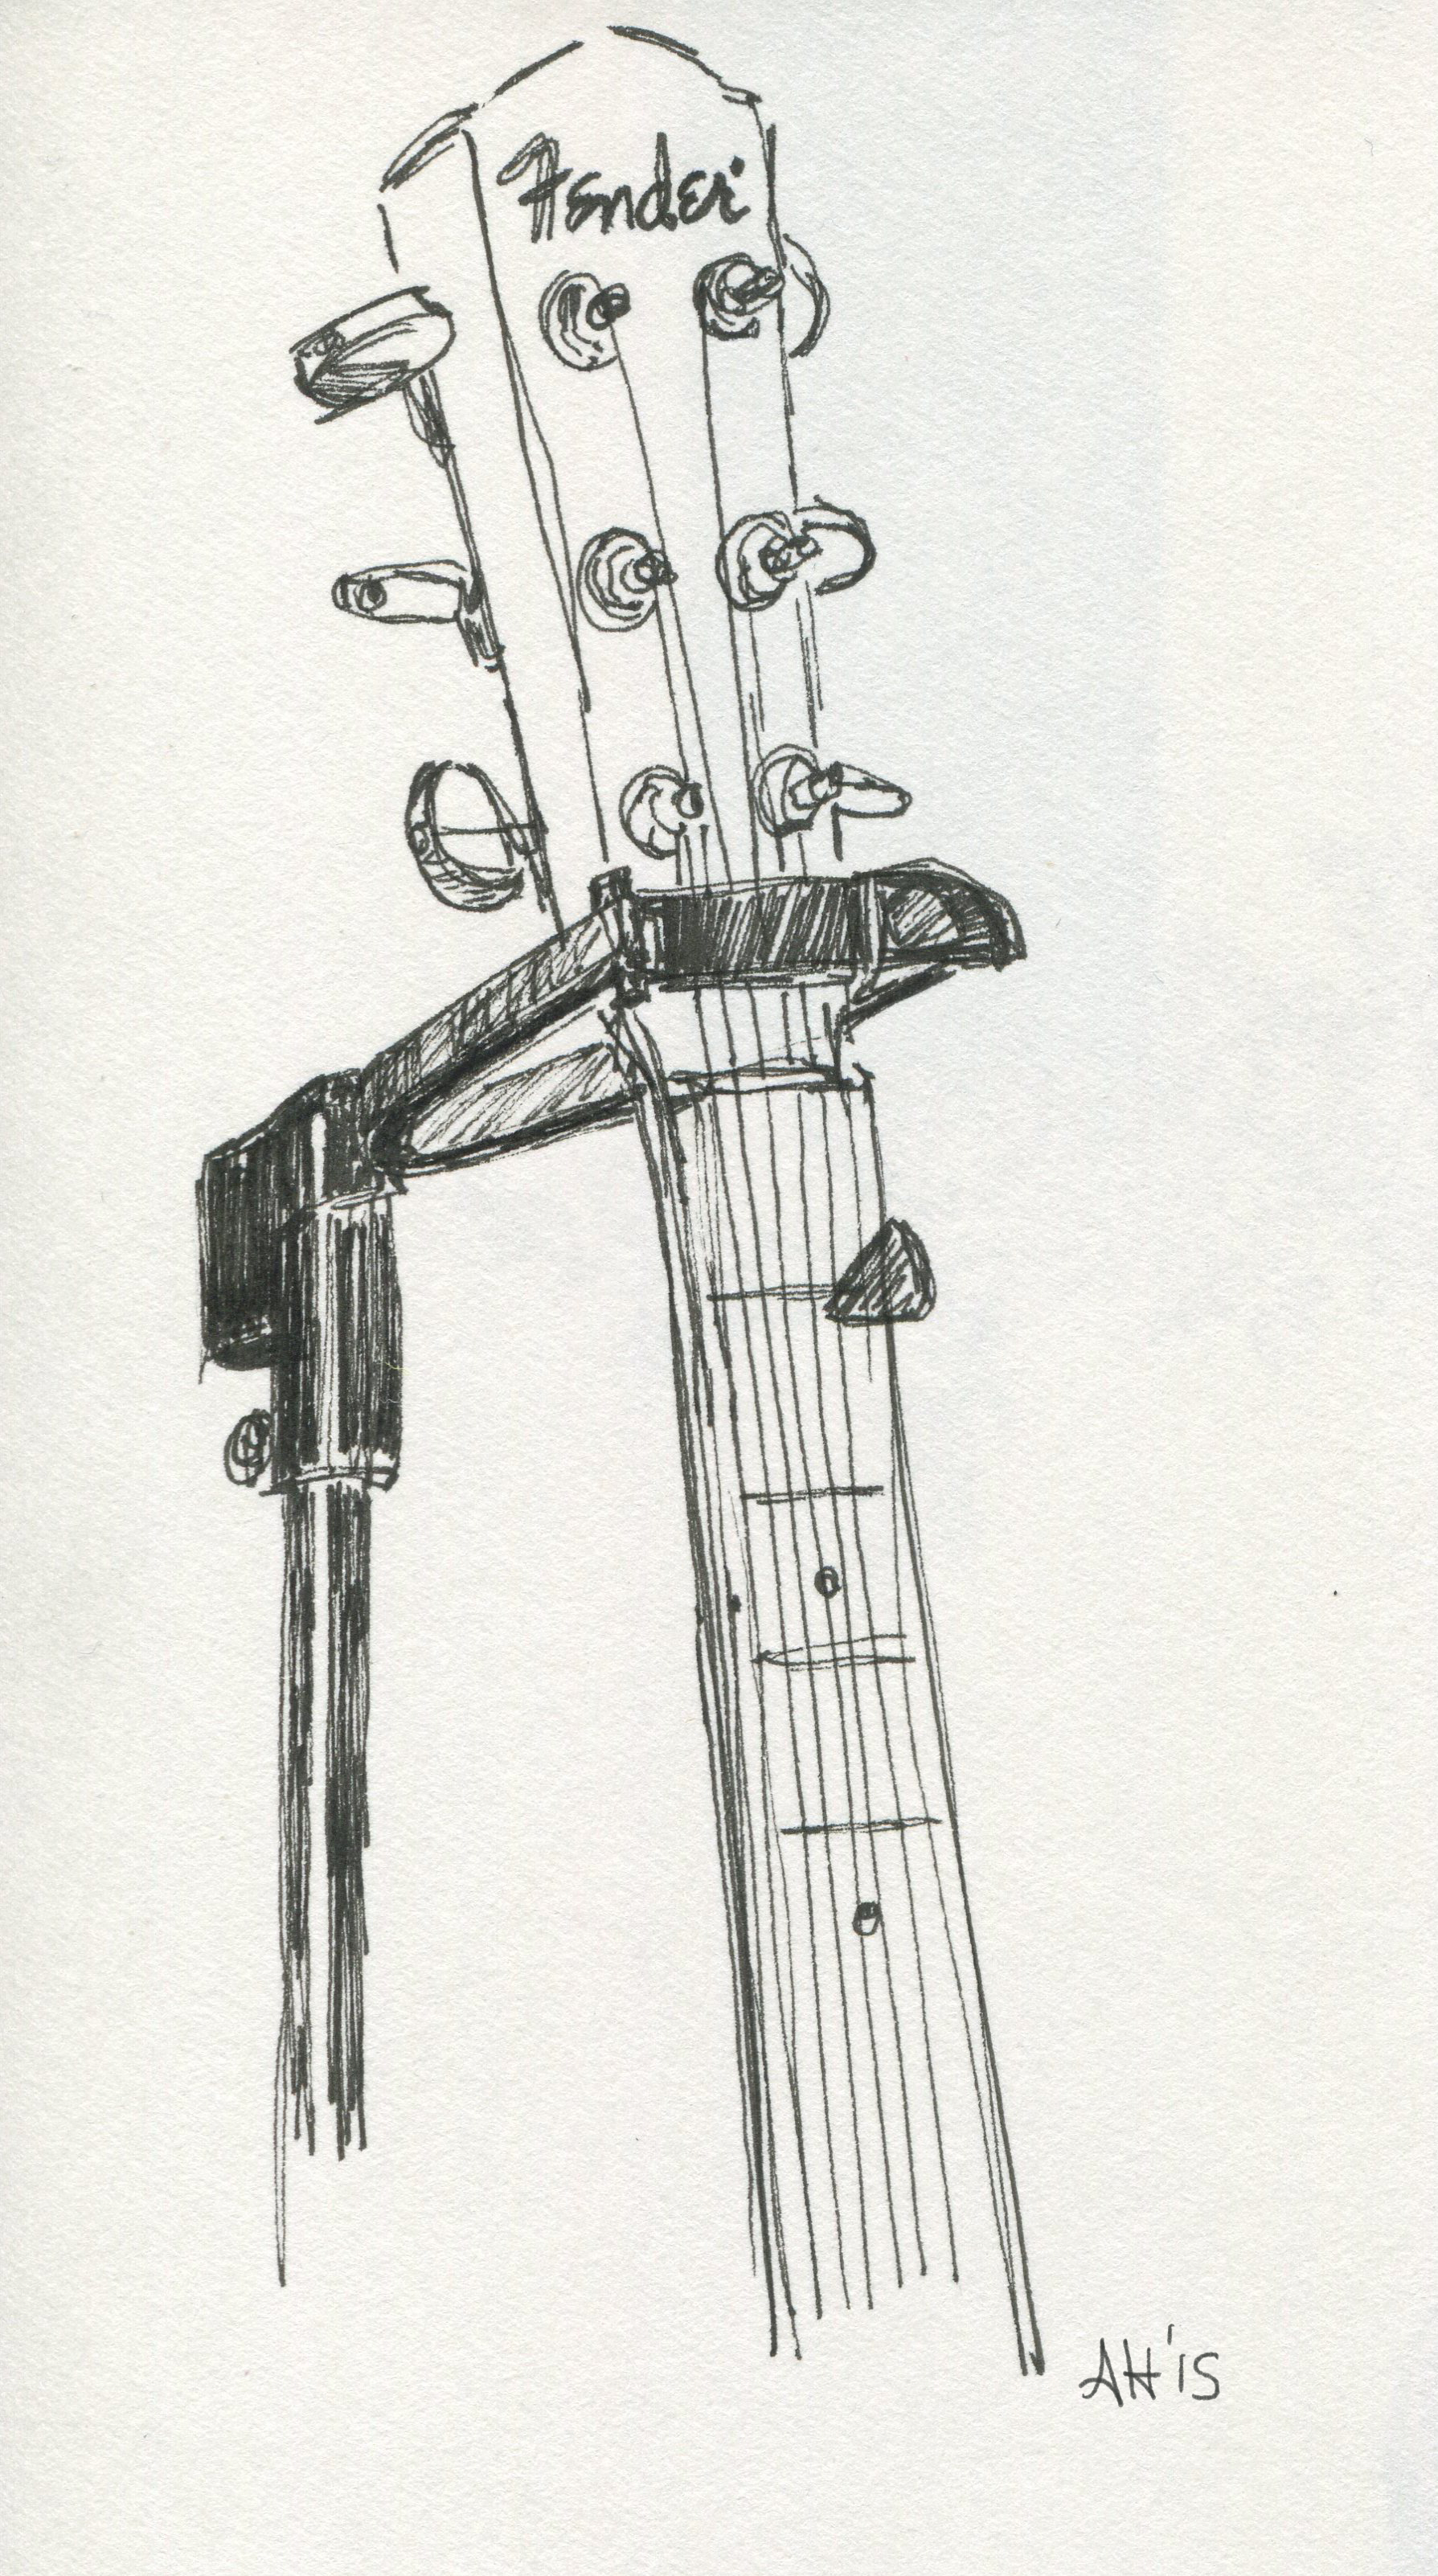 a sketch of a fender acoustic guitar by alleanna harris